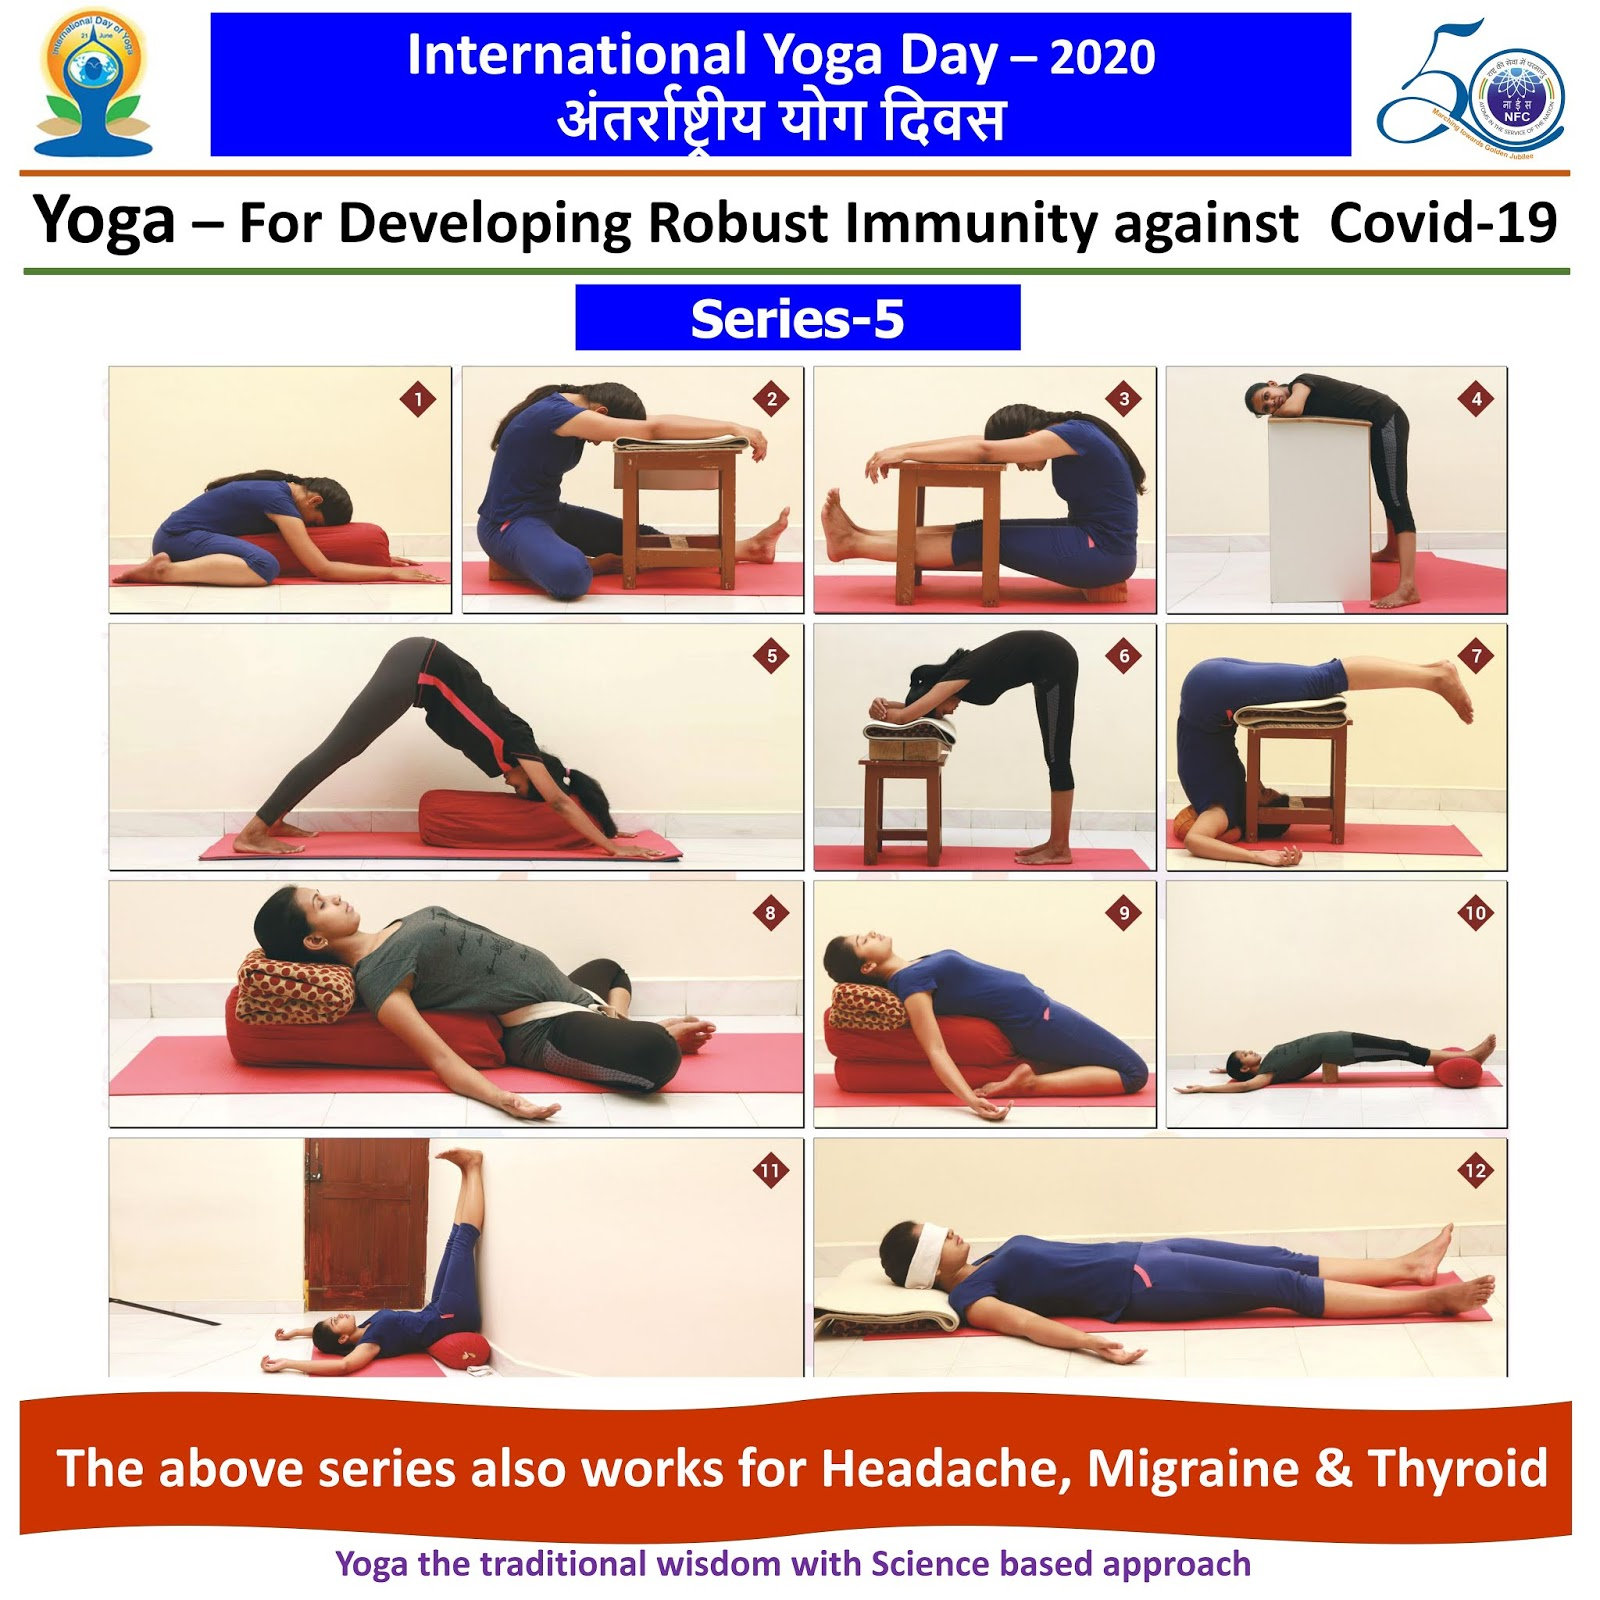 Happy International Yoga Day ... This series also works for Headache, Migraine & Thyroid